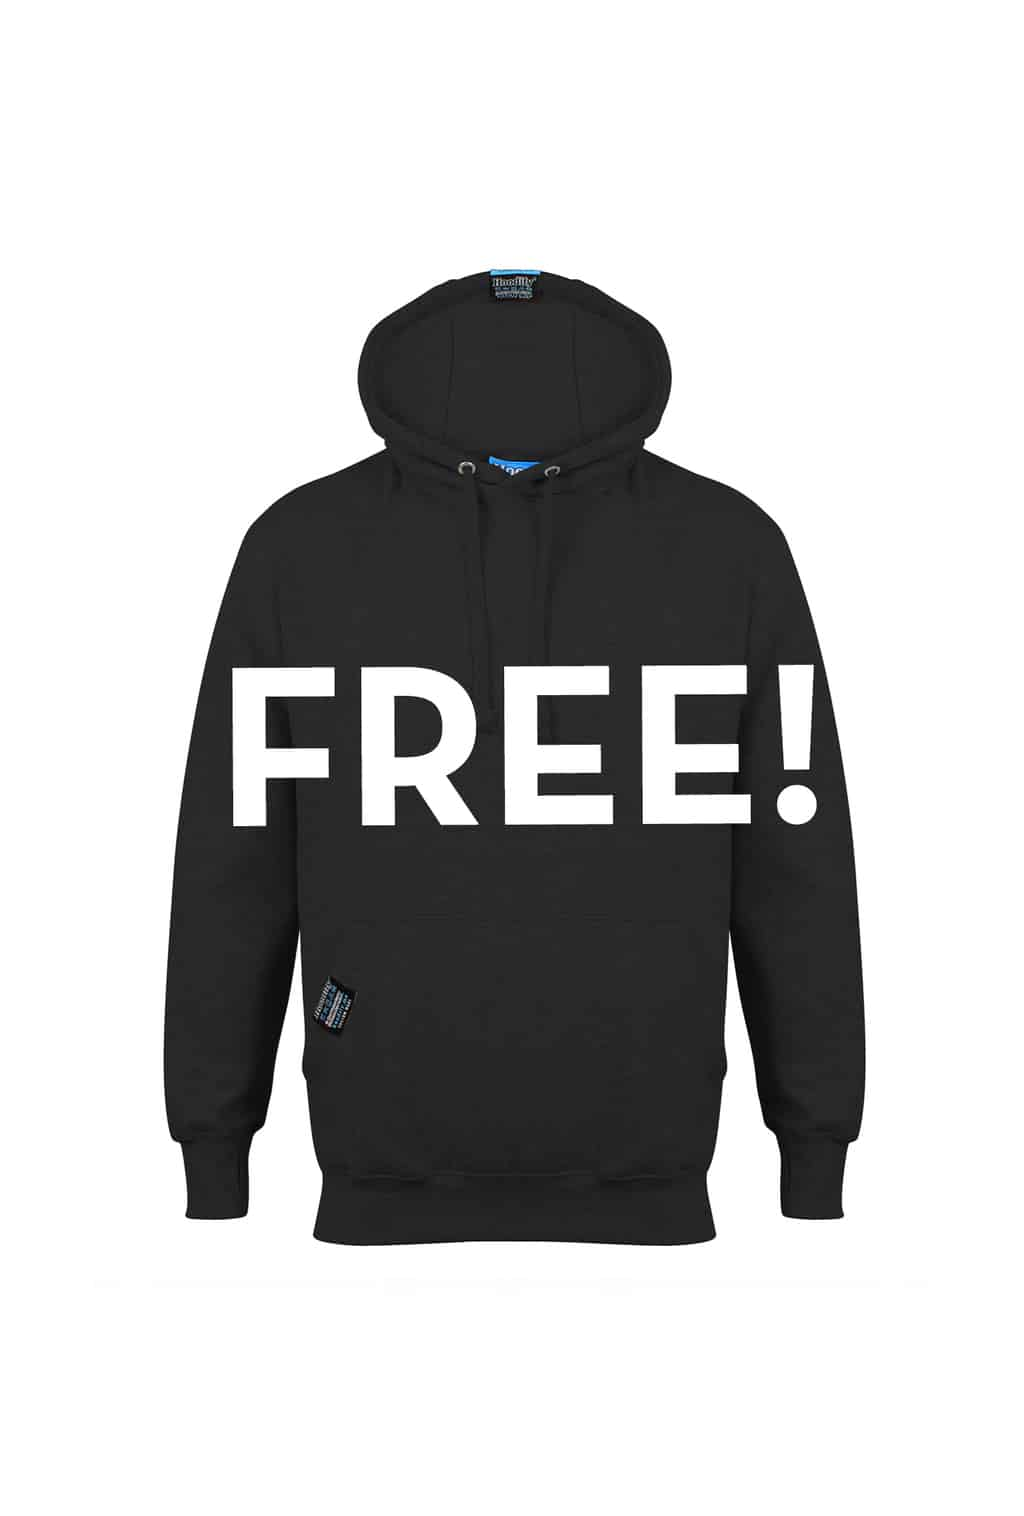 HOODIFY.ME ABOUT US - FREE WITH EVERY ORDER - FREE HOODIE